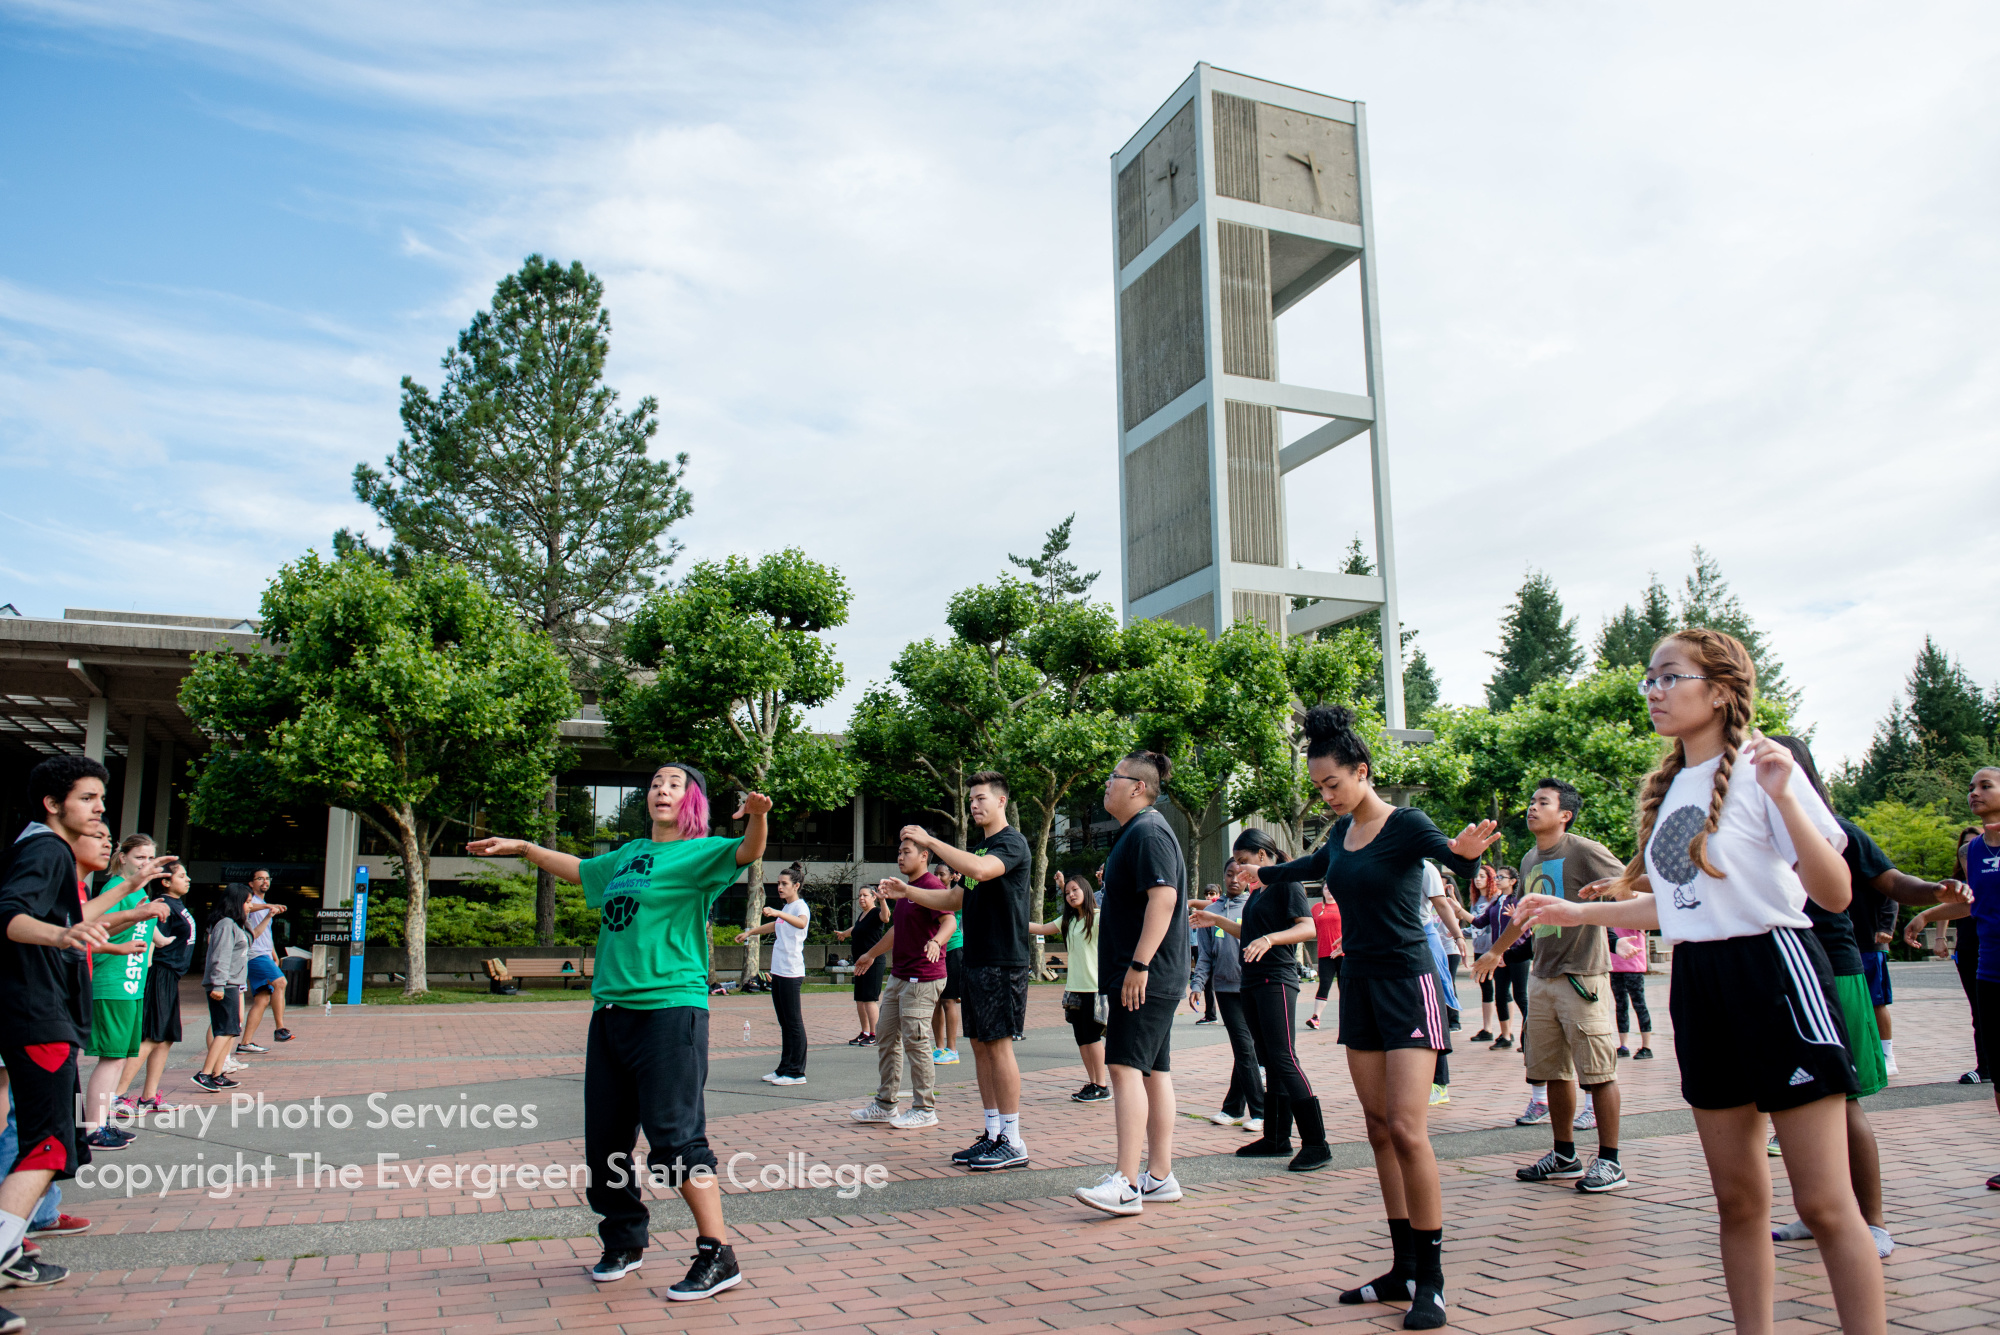 Upward bound students participate in Dance Fitness on Red Square